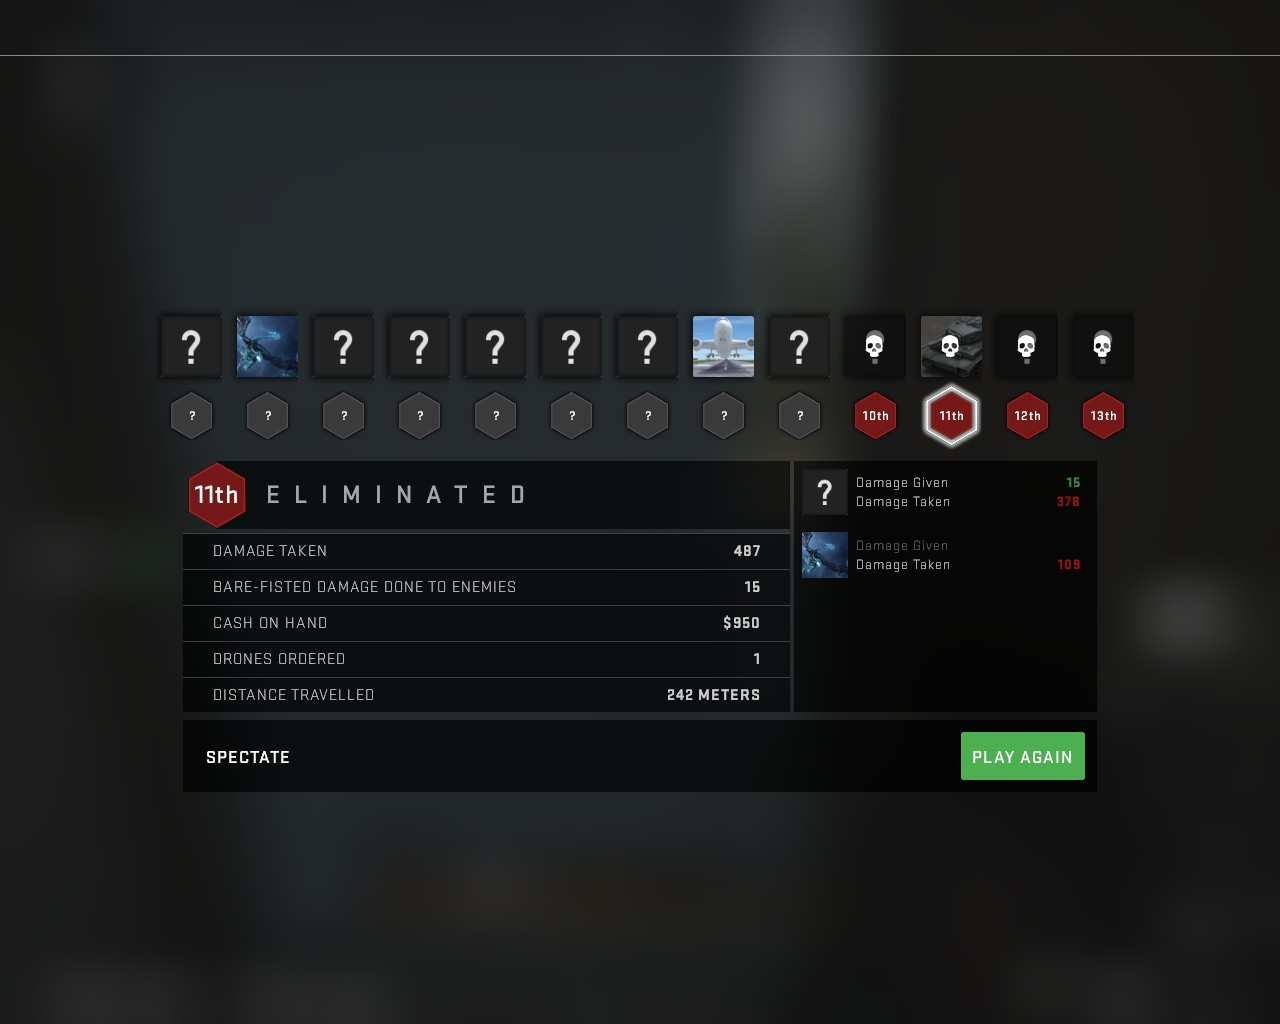 cs go prime matchmaking without phone